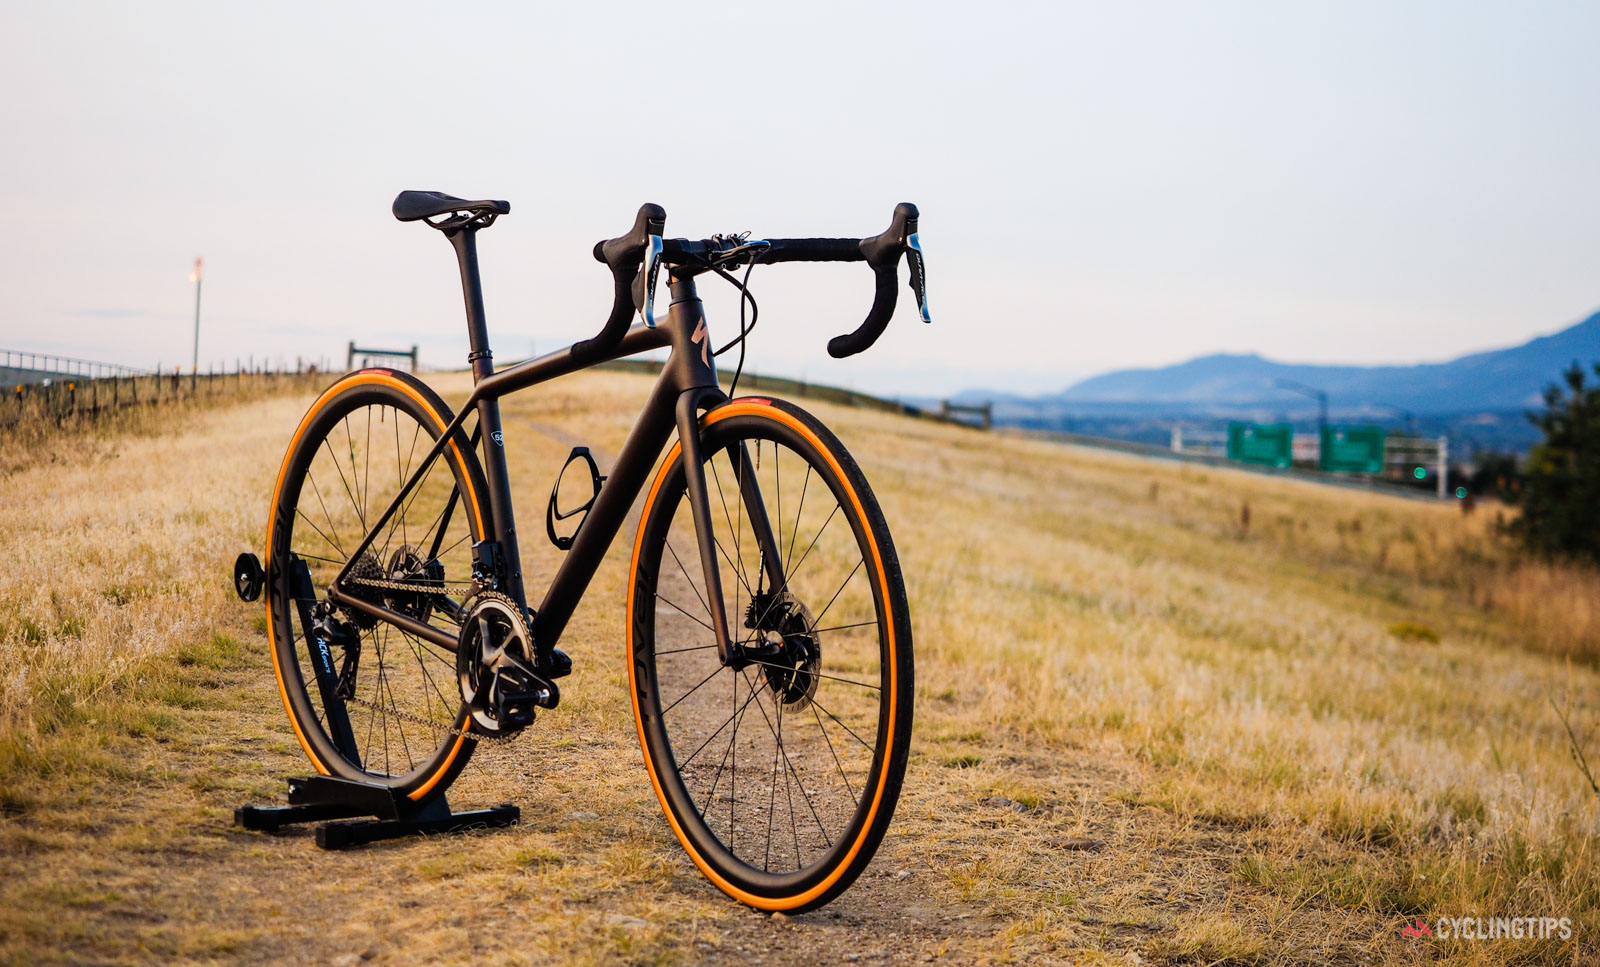 Specialized S-Works Aethos shuns aero, embraces low weight and ride quality